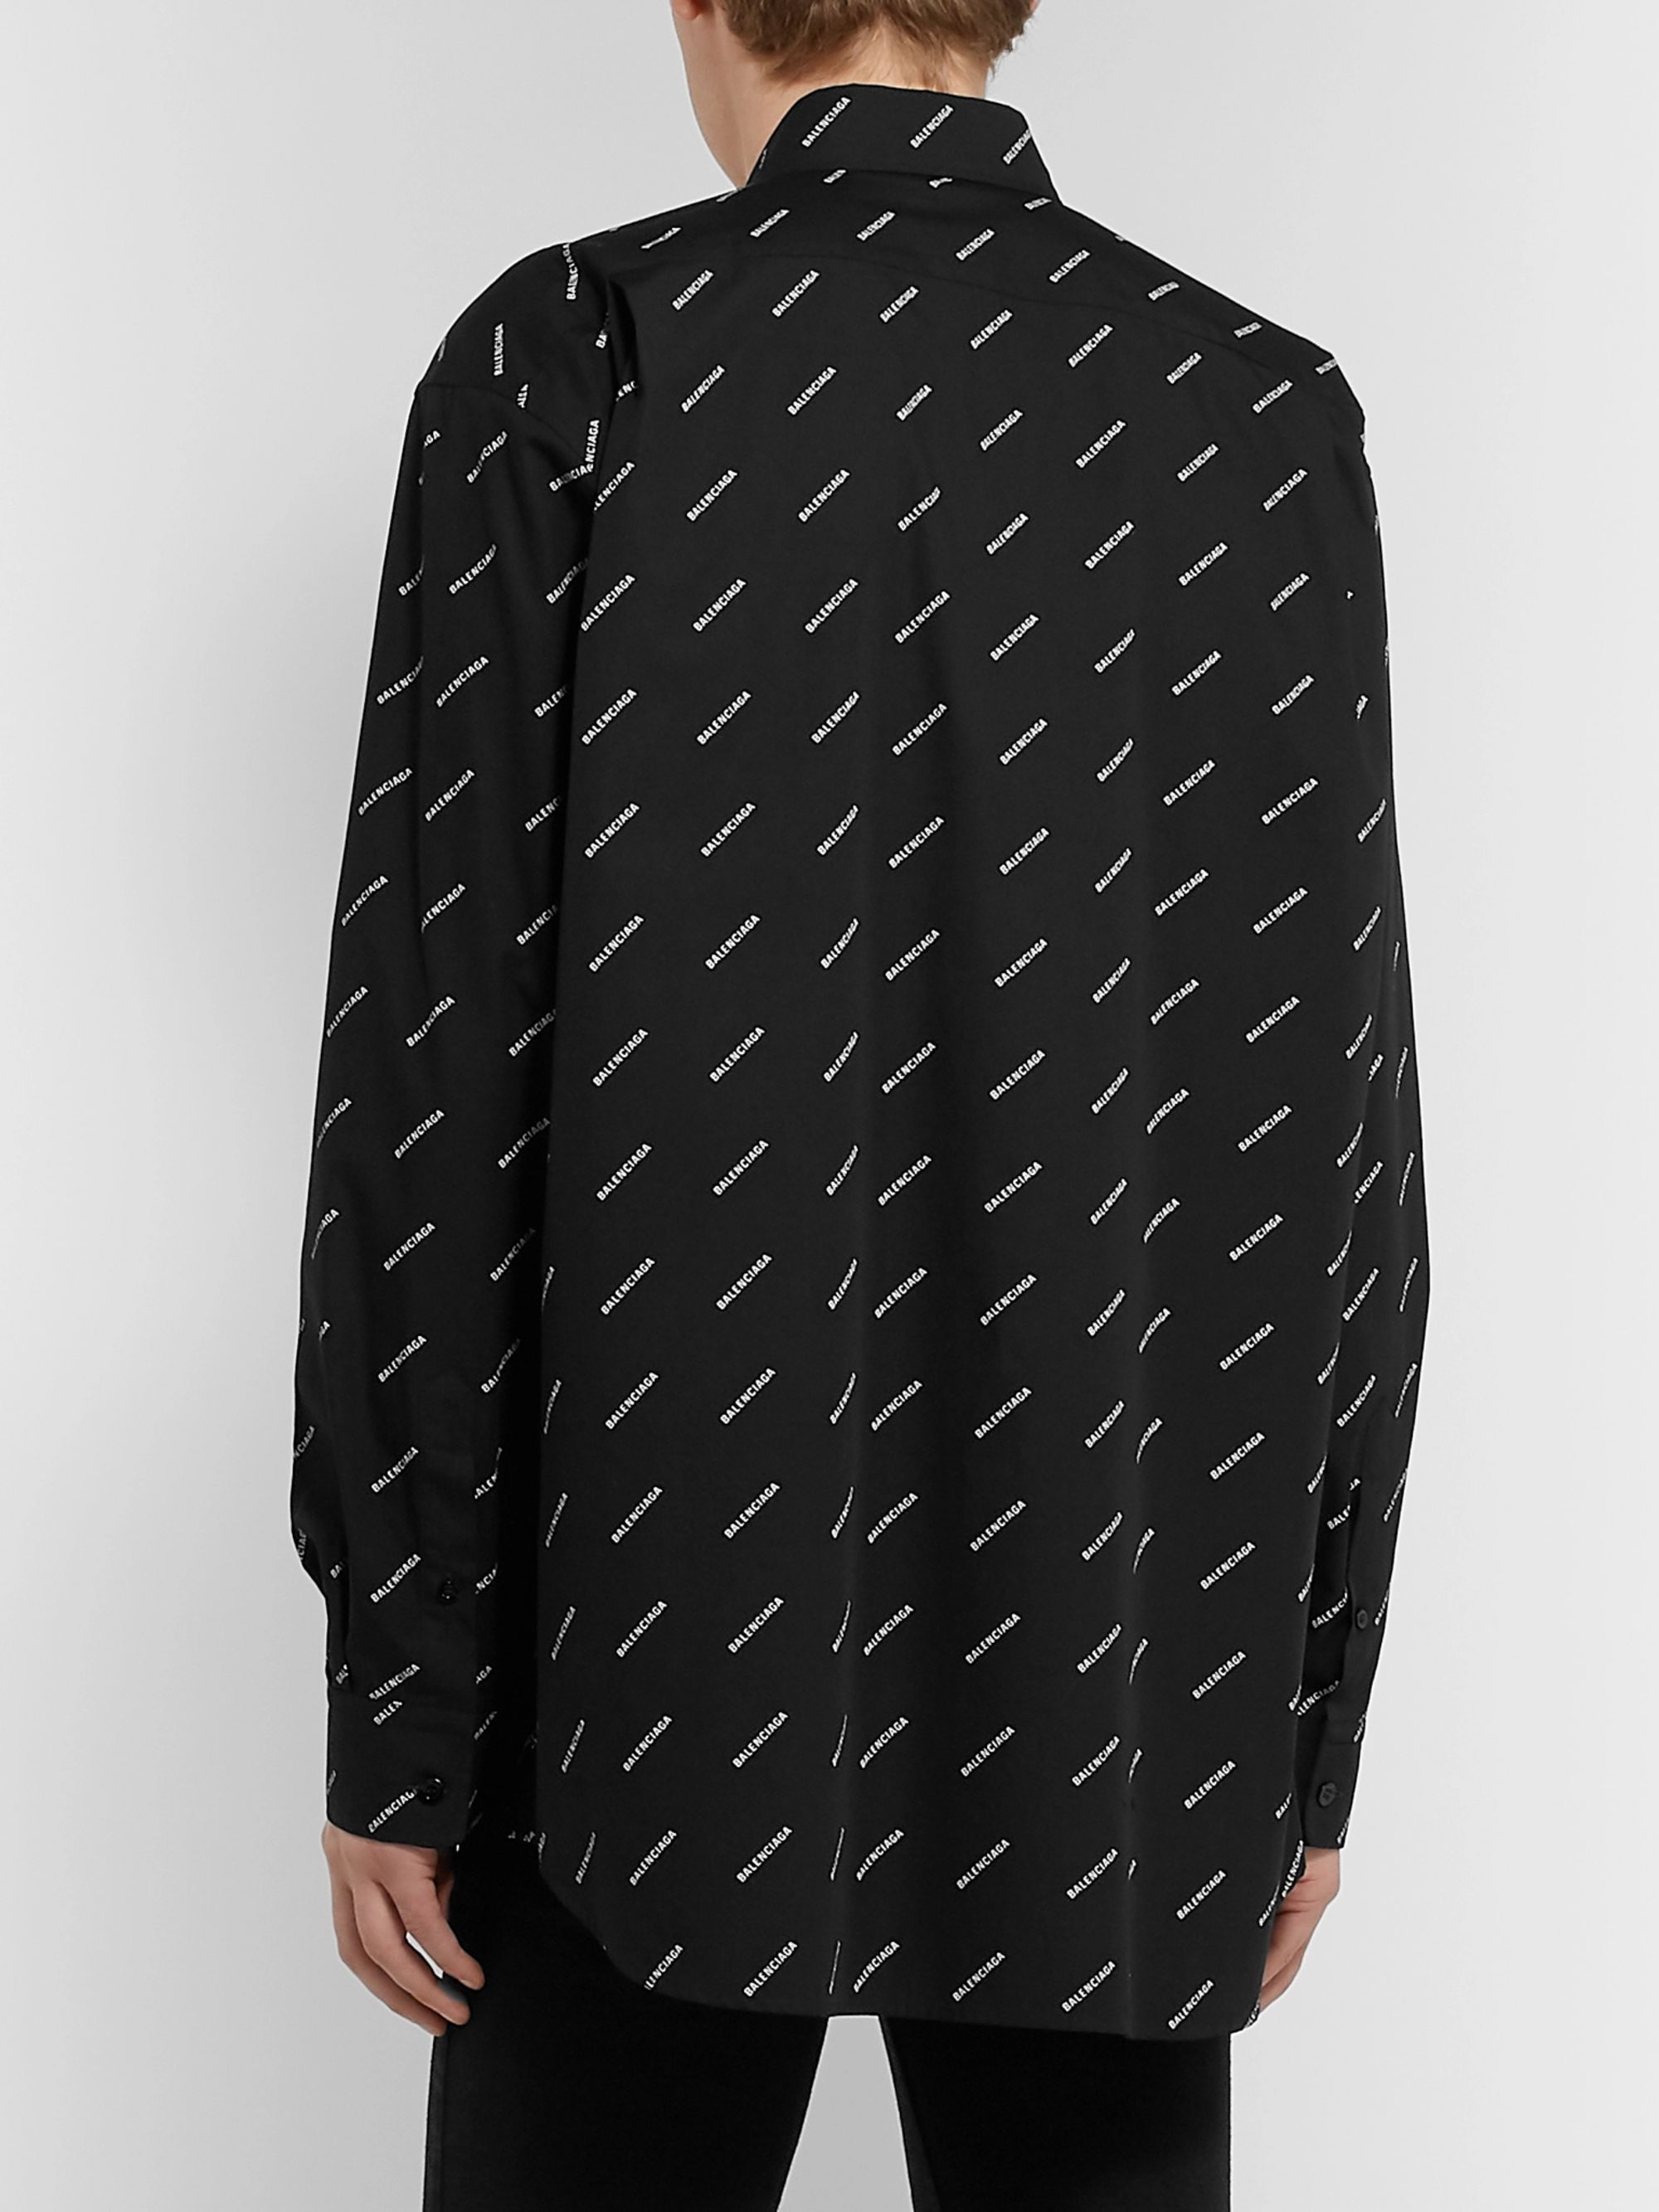 Balenciaga Button-Down Collar Logo-Print Cotton Shirt